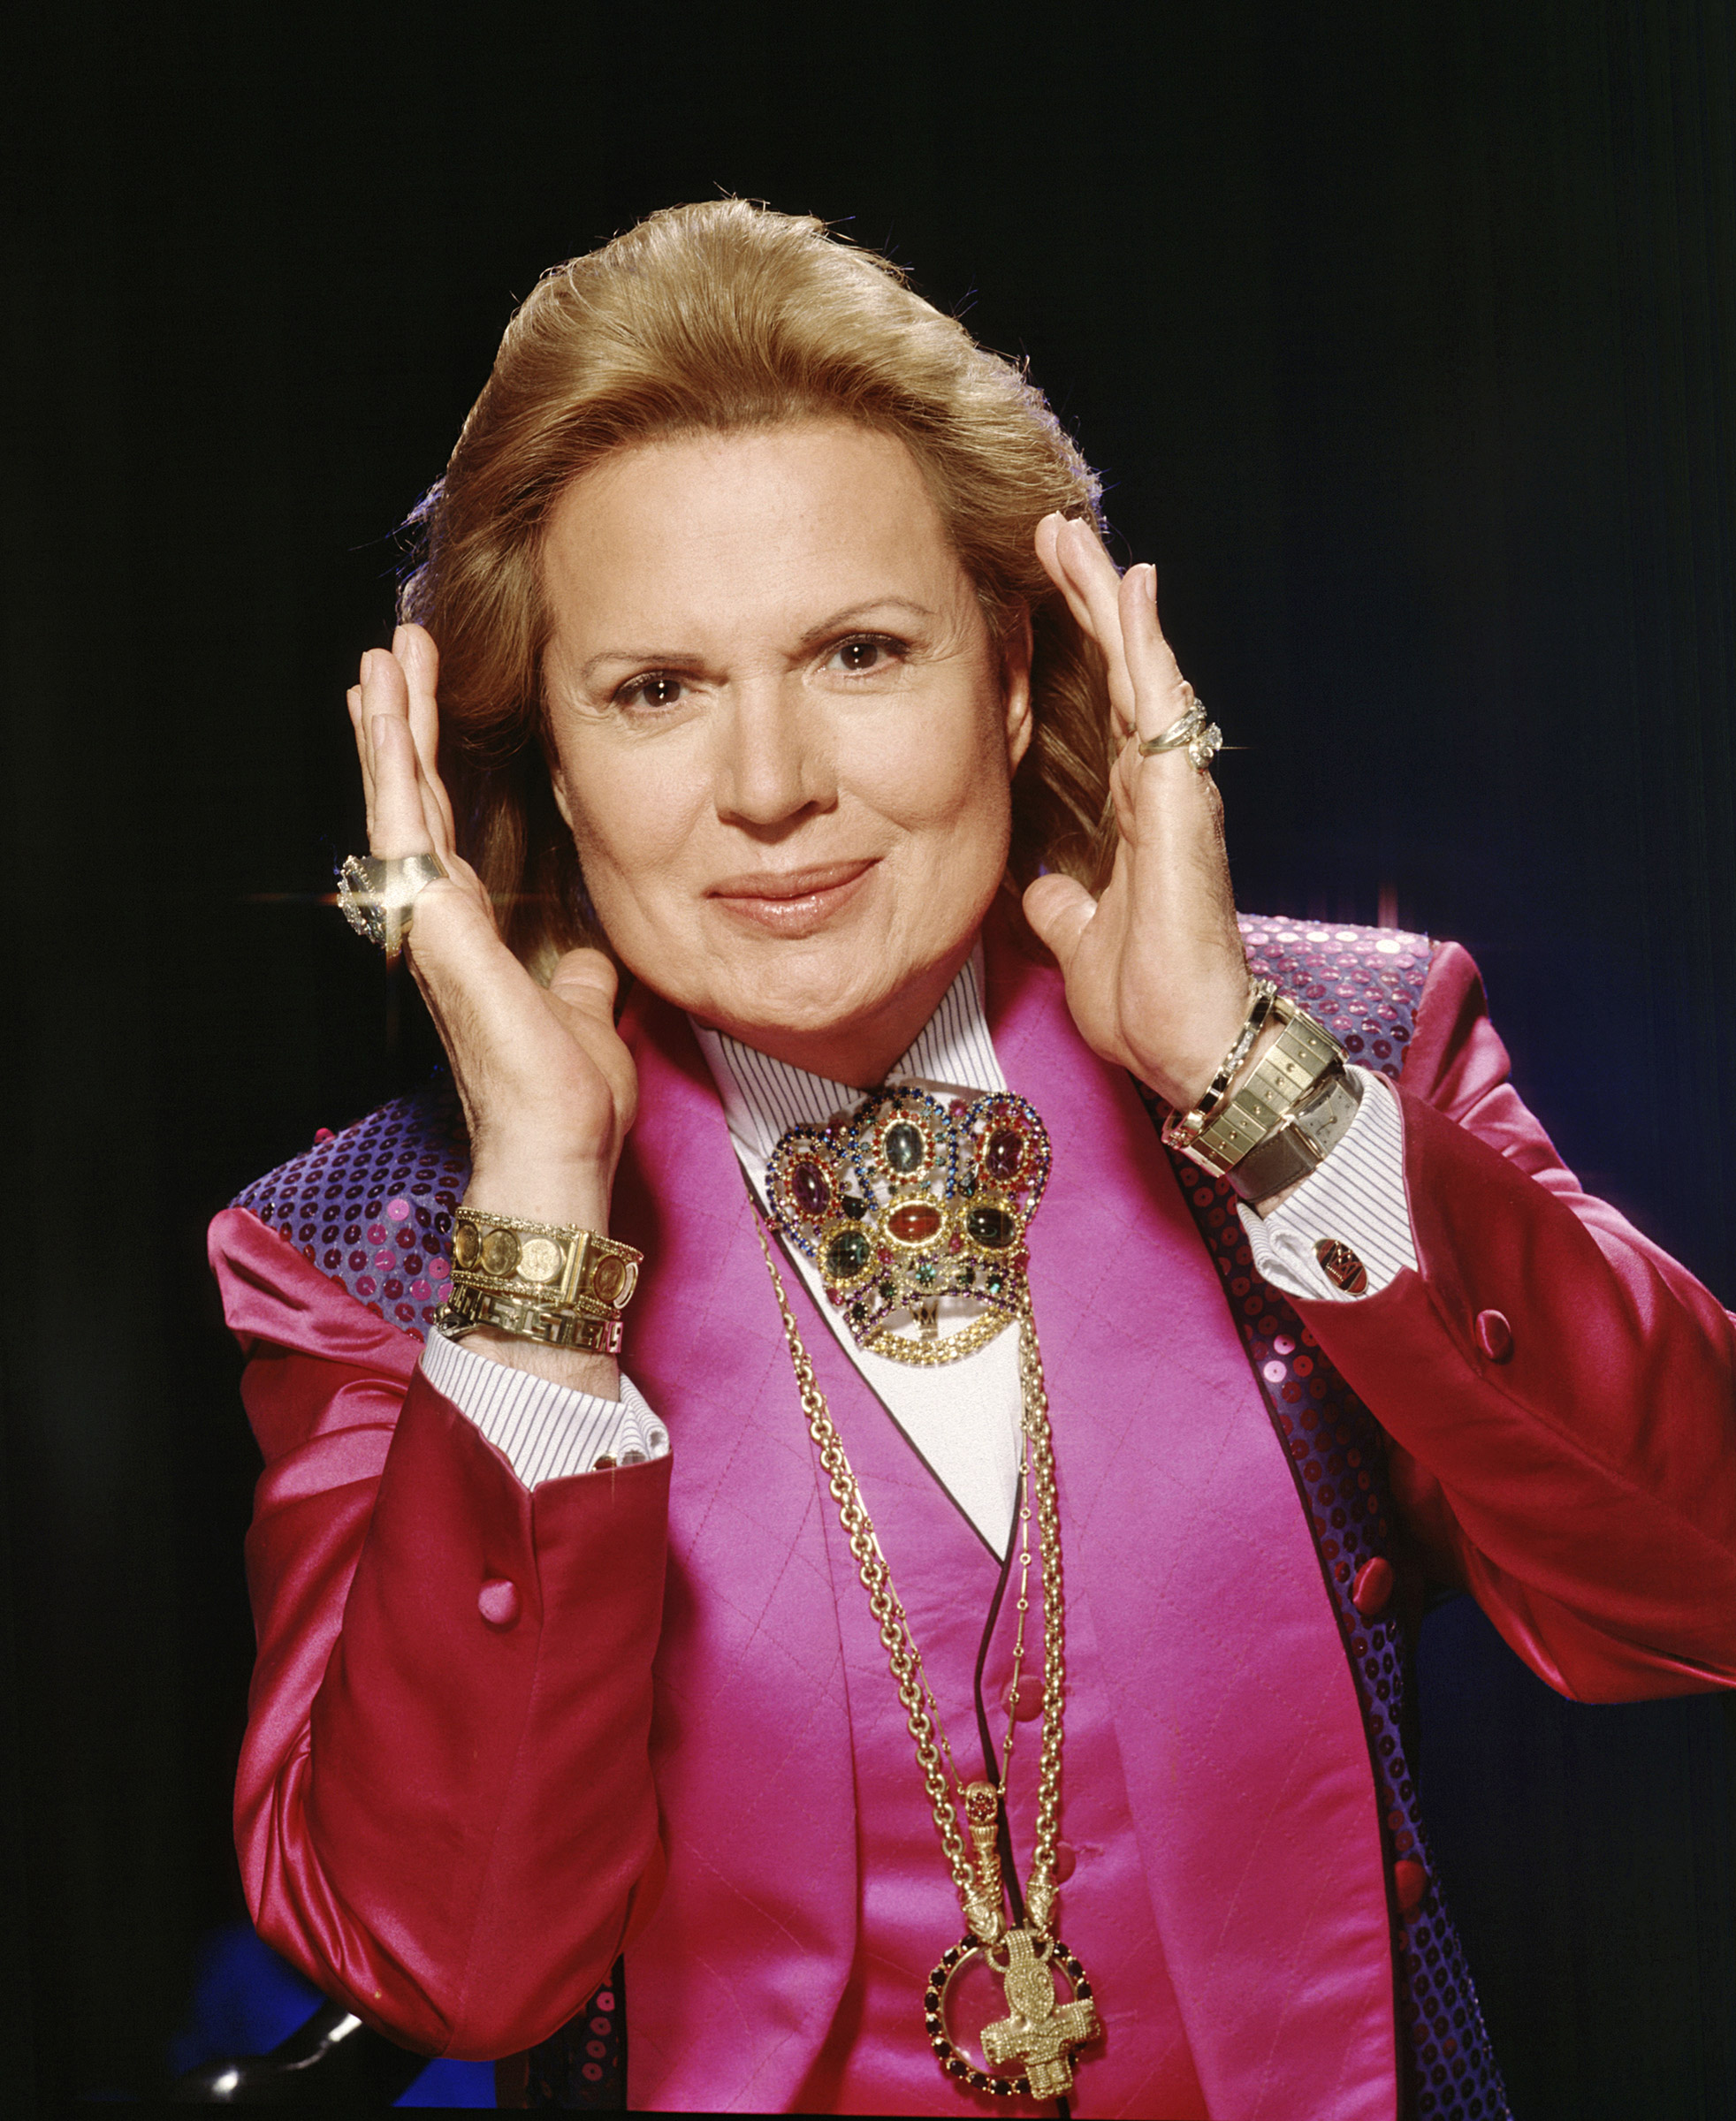 How tall is Walter Mercado?